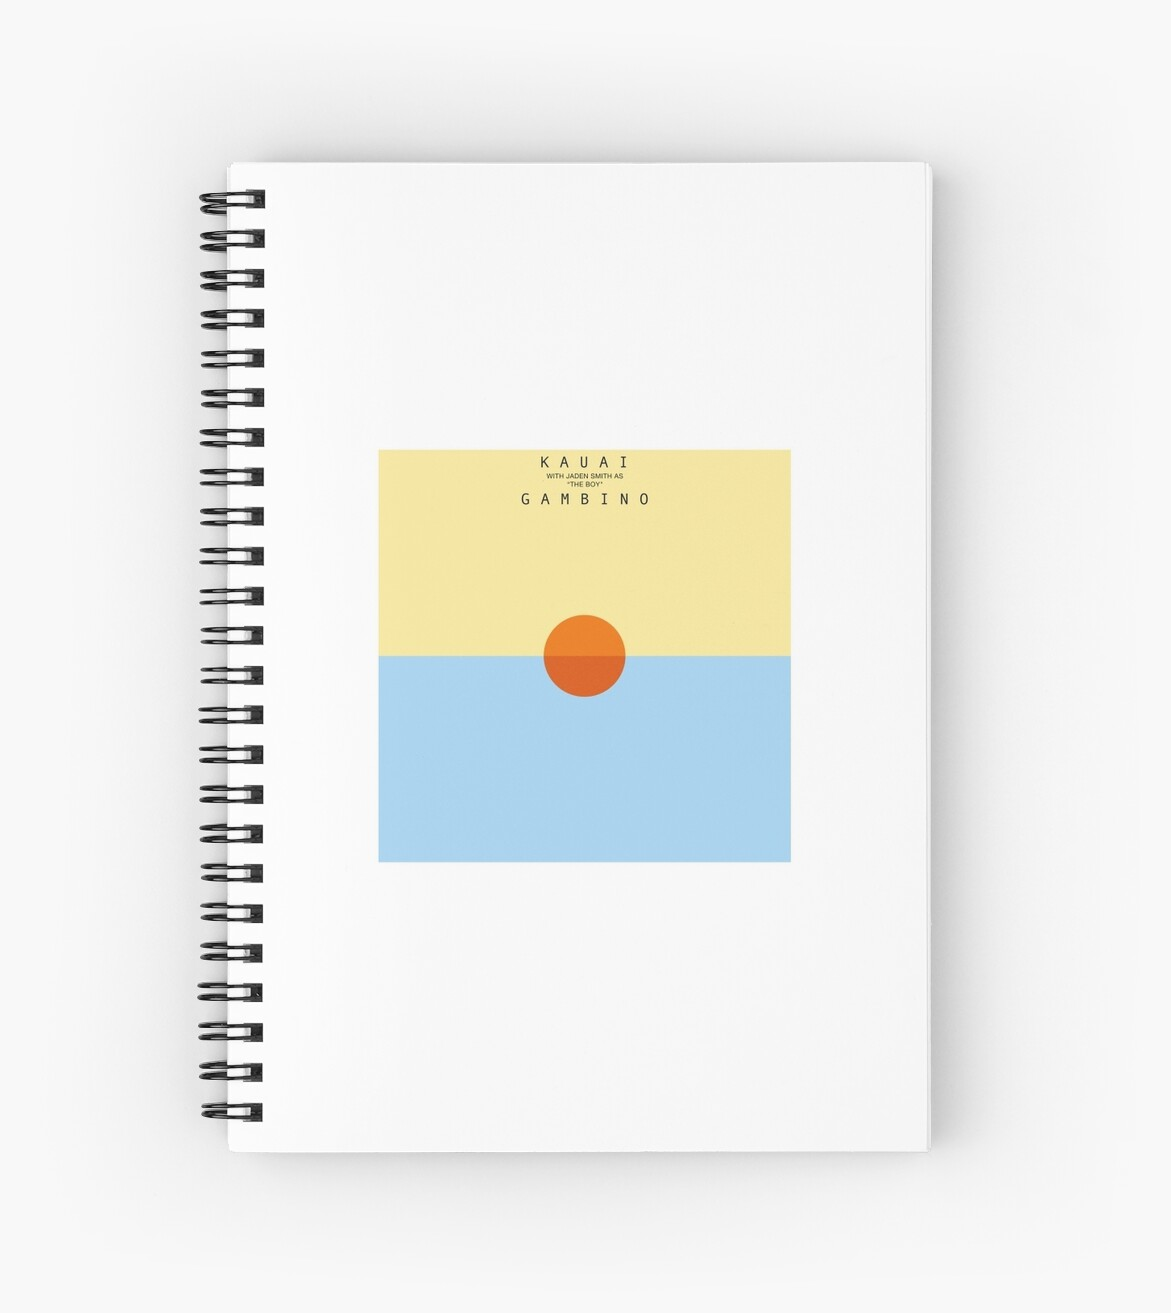 Stn Mtn Kauai Album Cover Spiral Notebook By Benparker Redbubble